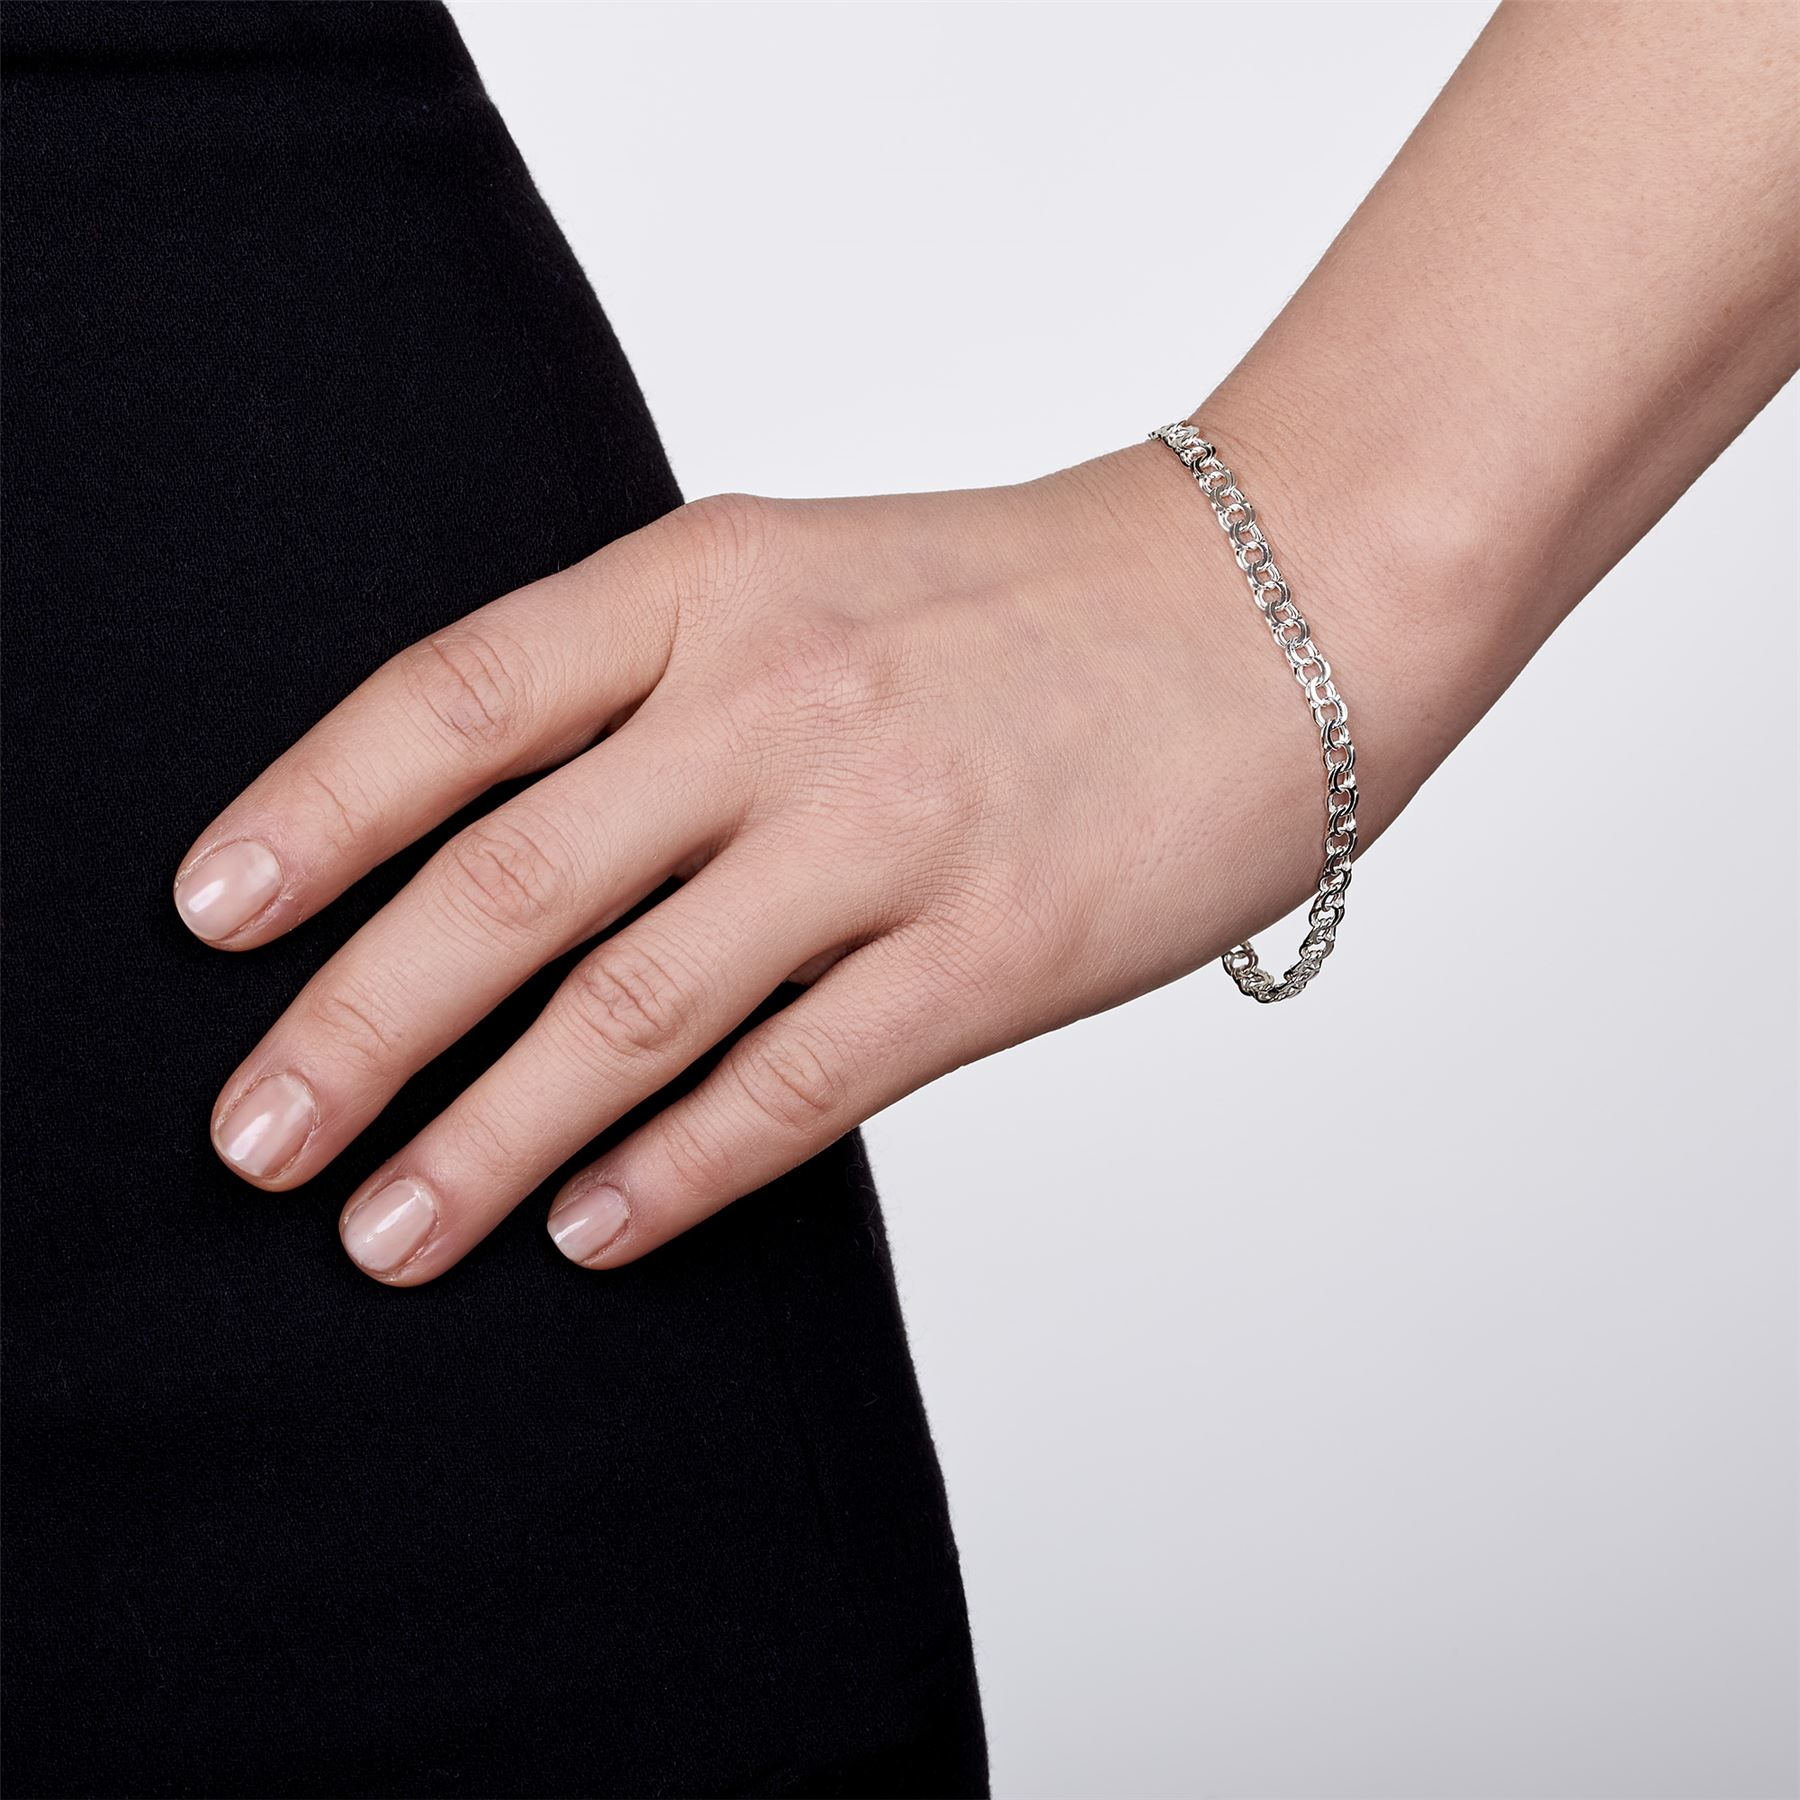 Amberta-Jewelry-Genuine-925-Sterling-Silver-Bracelet-Bangle-Chain-Made-in-Italy thumbnail 95